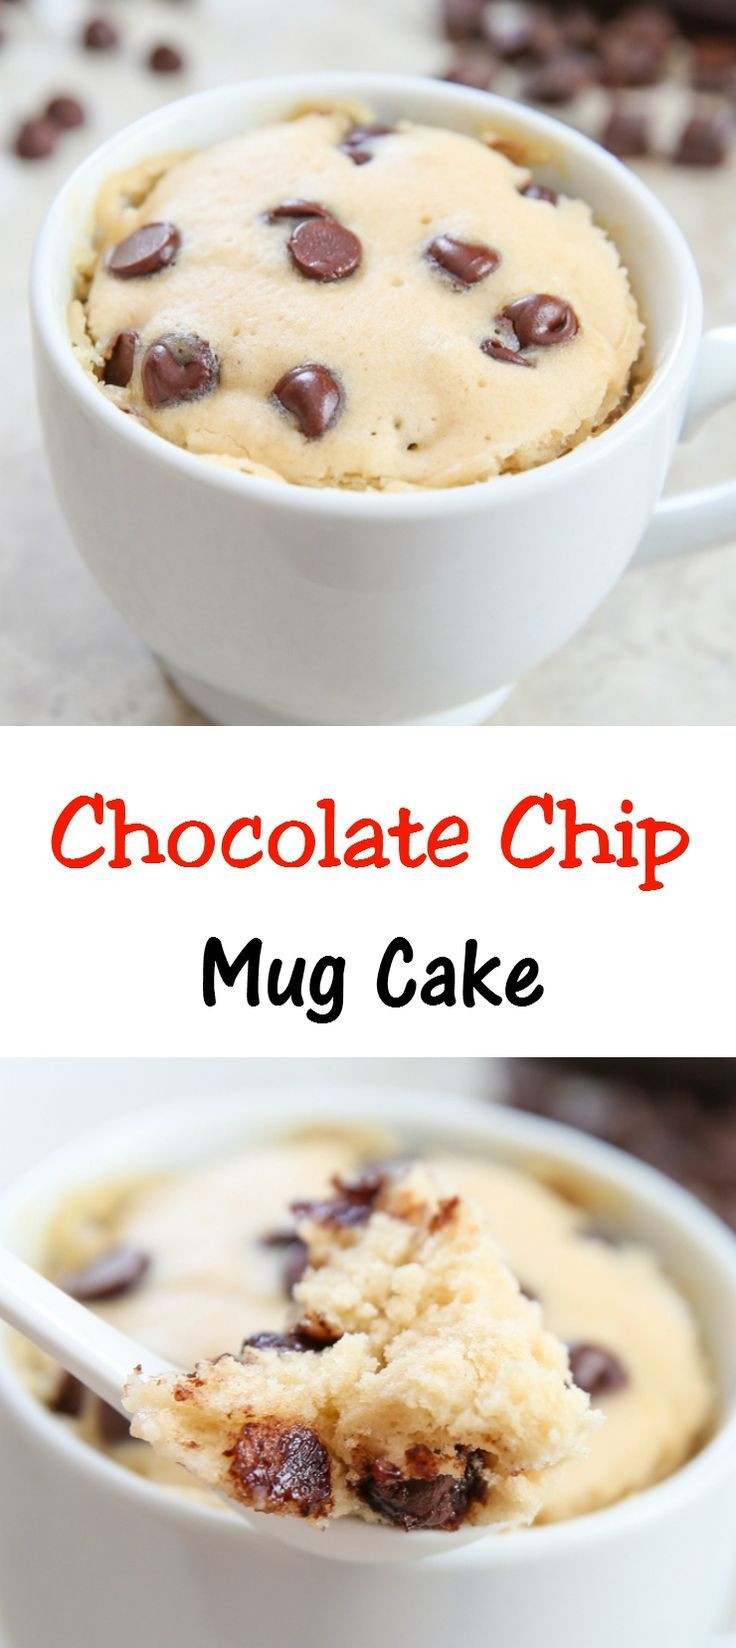 Microwave Dessert In A Mug  Best 25 Mug cakes ideas on Pinterest